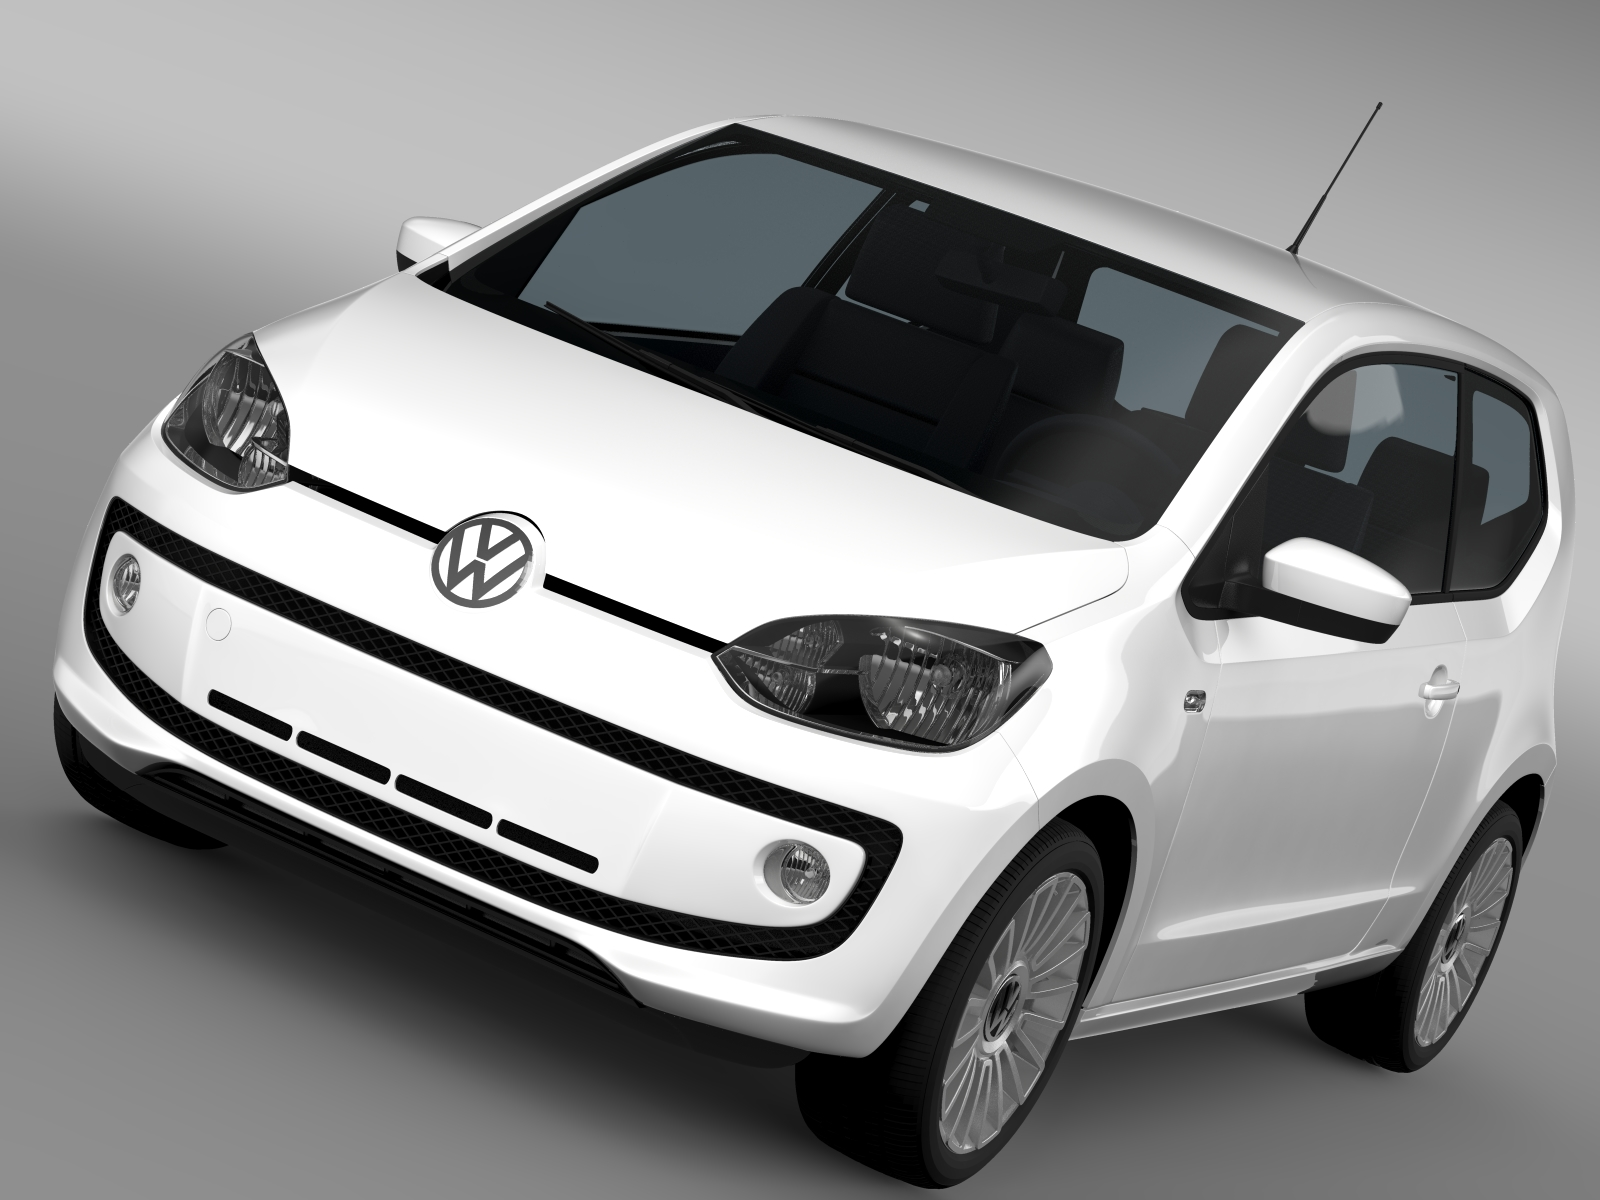 vw up 3 door 2015 3d model 3ds max fbx c4d lwo ma mb hrc xsi obj 213706